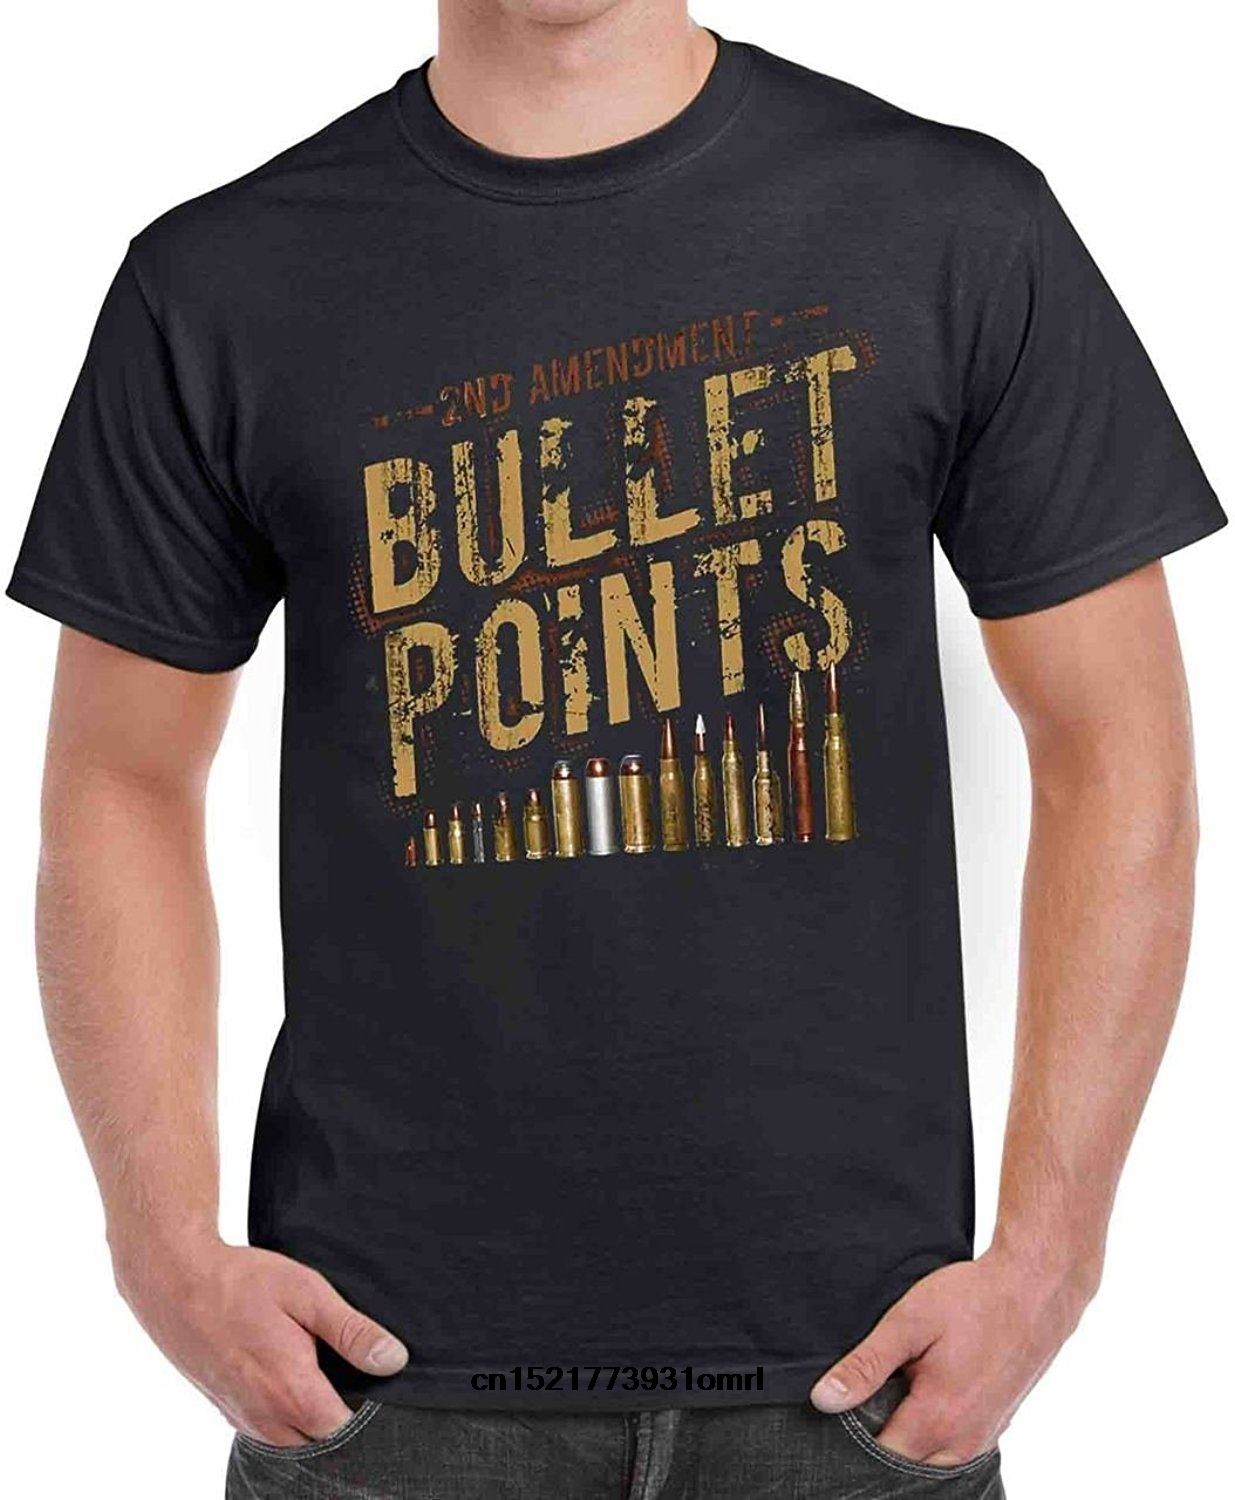 34b07987 Men T shirt 2nd Adt Bullet Points Tactical Gear Funny s funny t-shirt  novelty